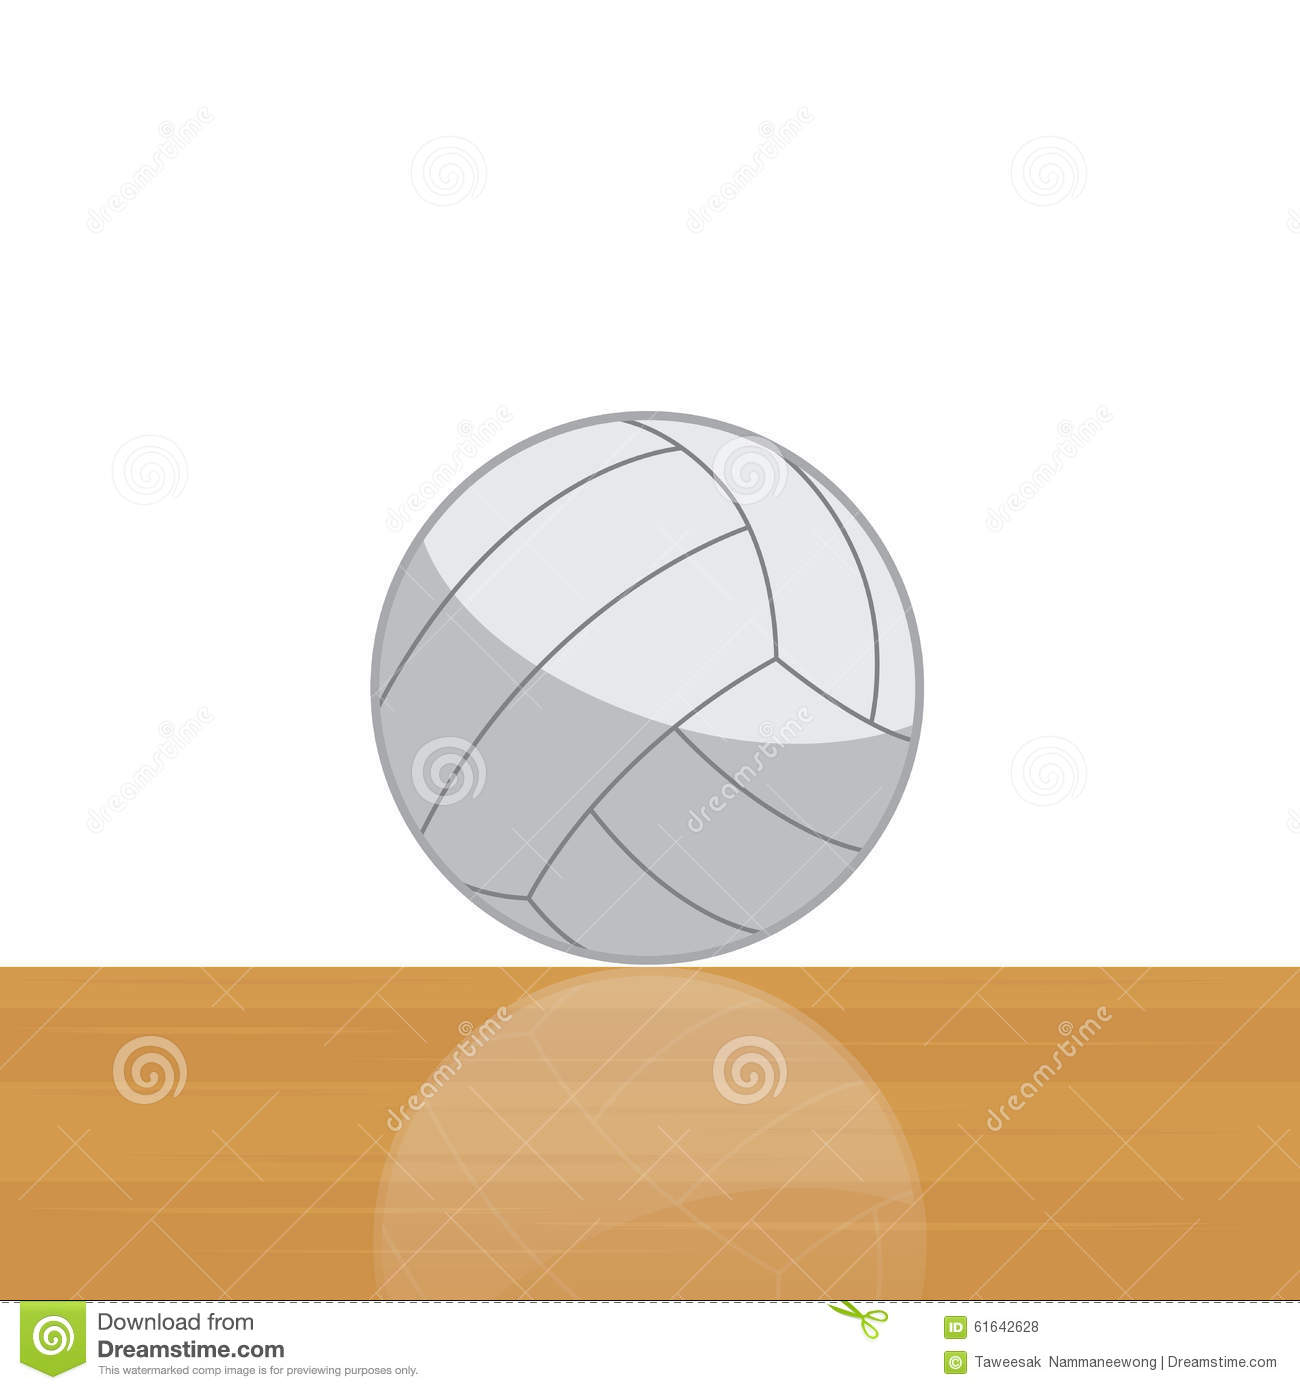 volleyball reflection 3 la84 foundation volleyball coaching manual edited by elaine roque, professional volleyball player, professor of physical education, collegiate volleyball.